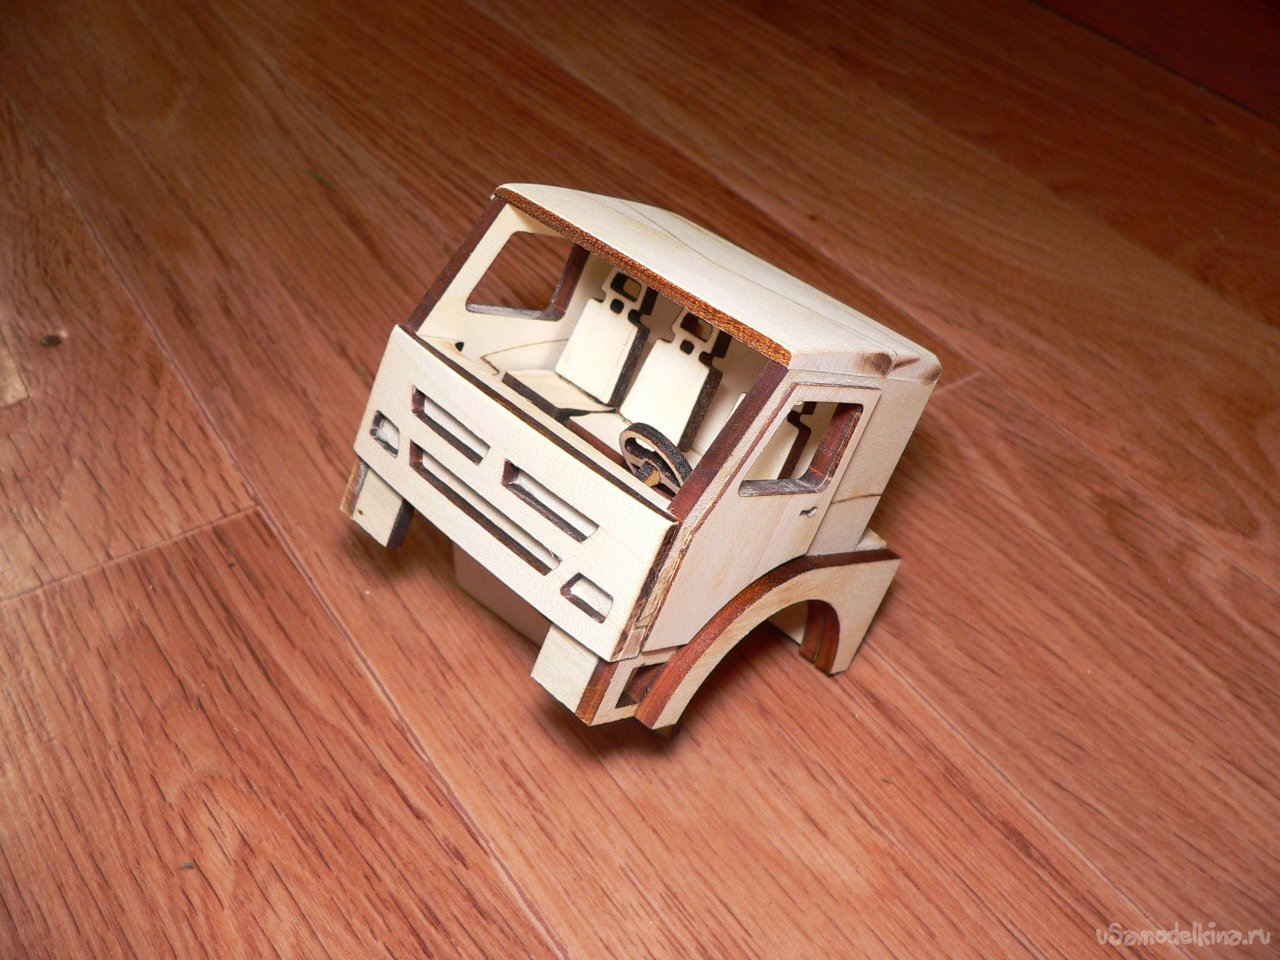 Toy timber timber truck made of wood